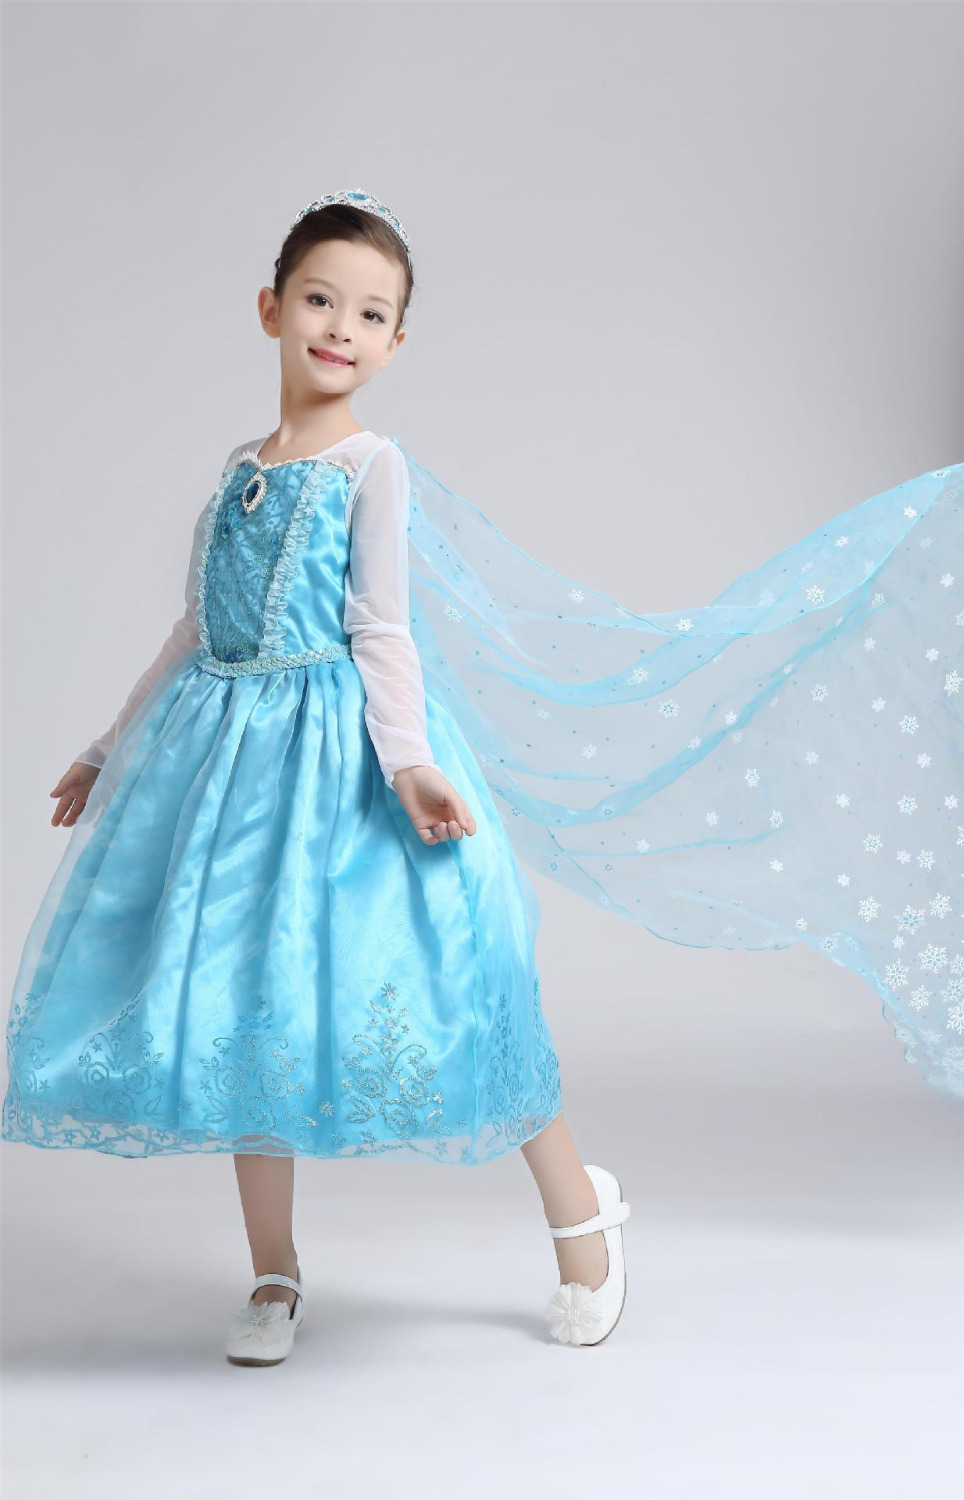 Free Shipping DHL 10pcs Wholesale Ice Princess Dresses Girl Party ...